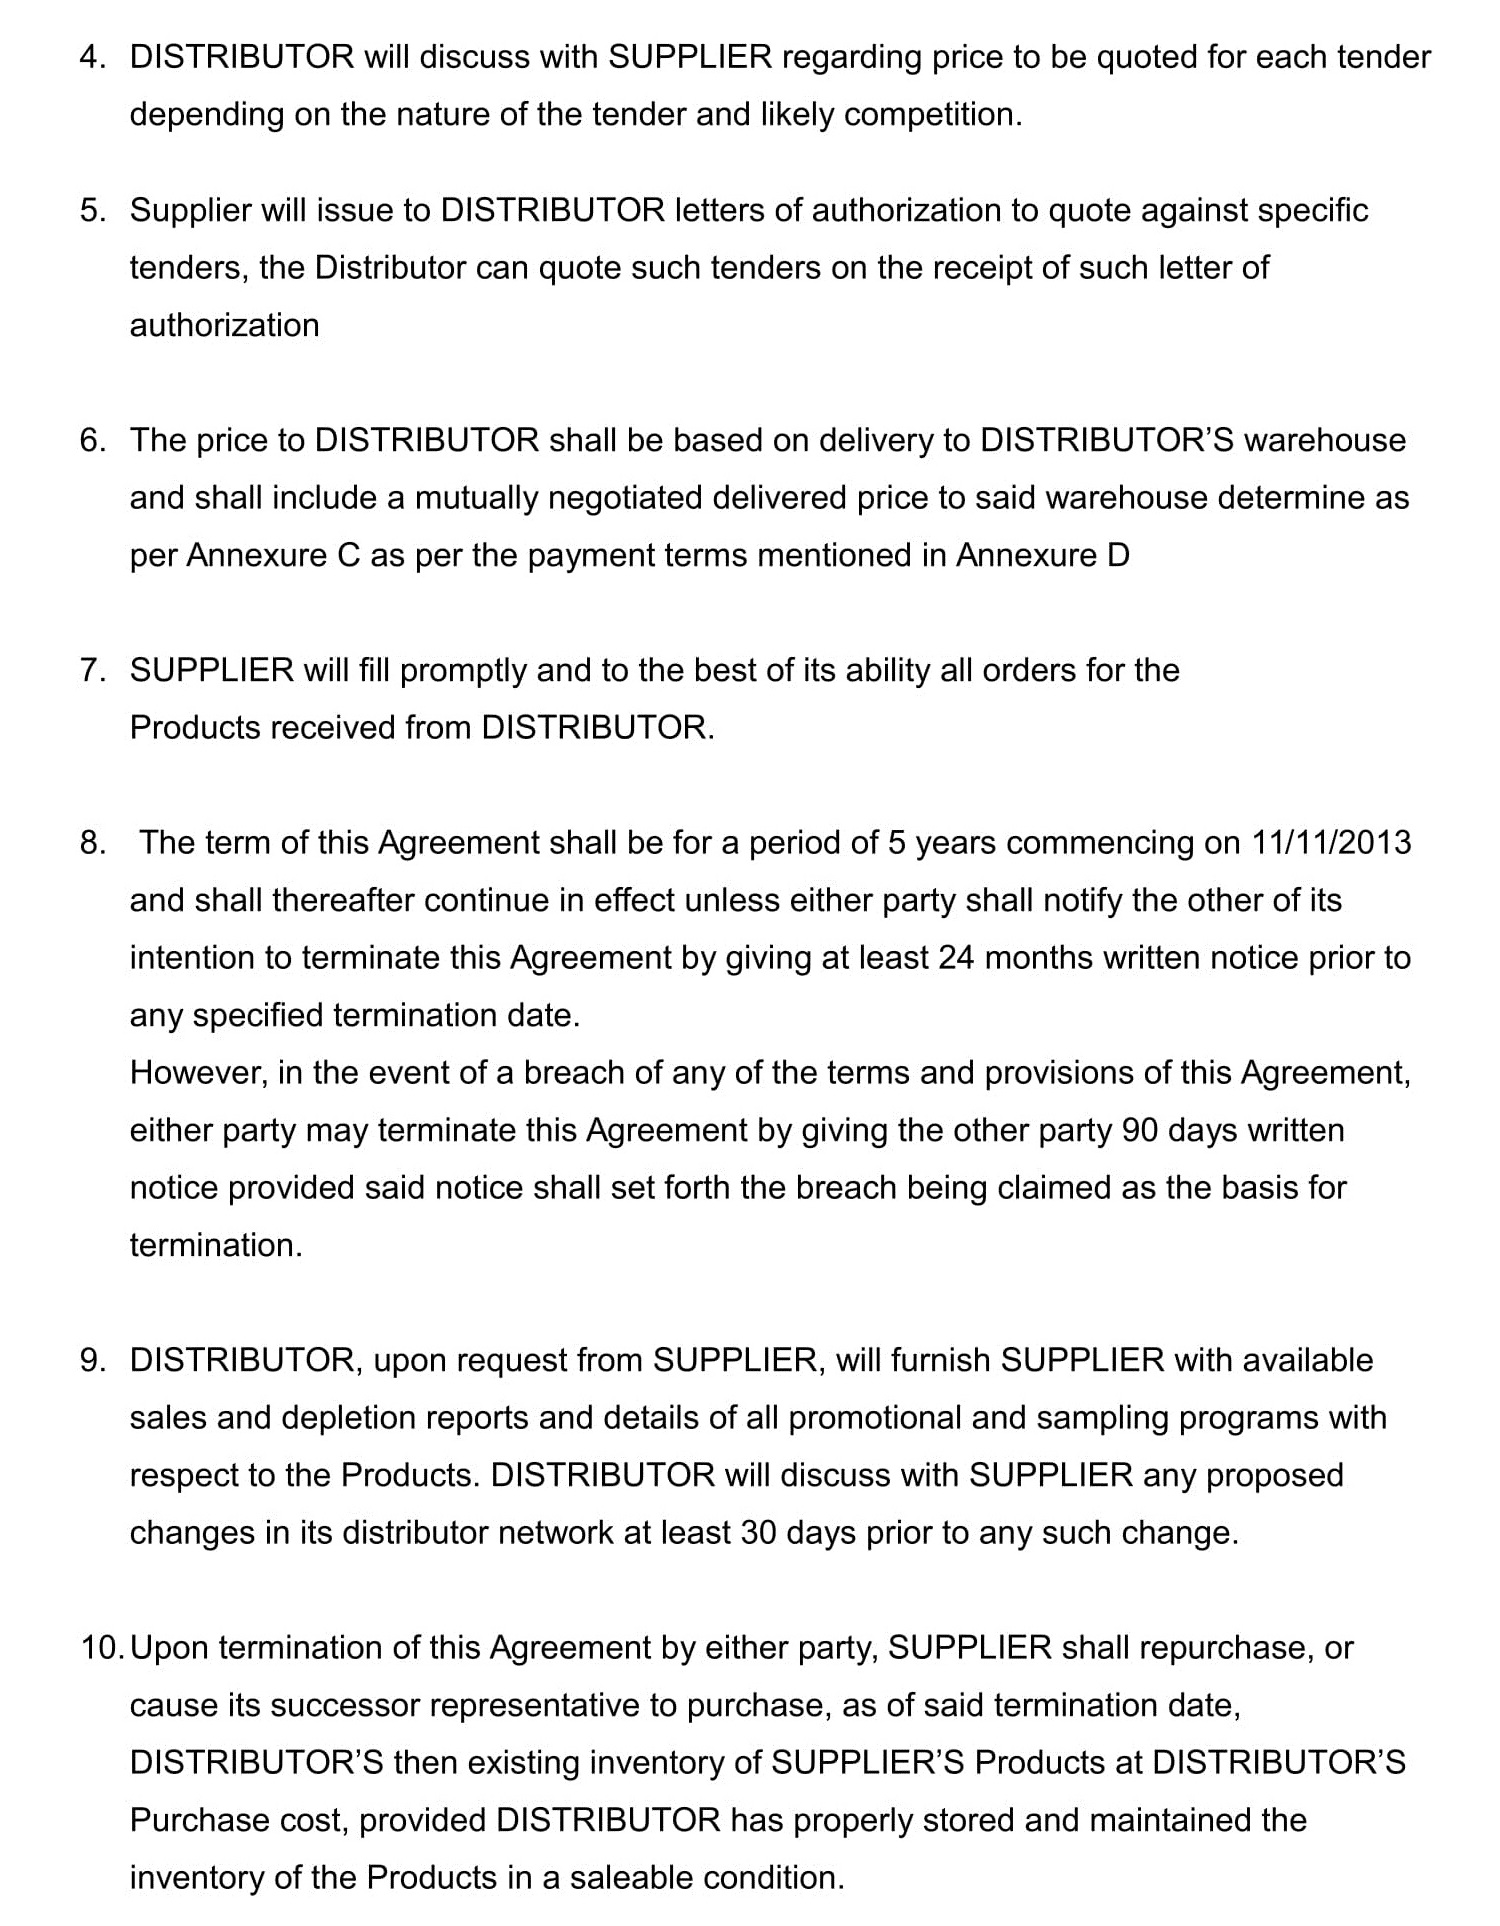 Distributor Agreement-2.jpg